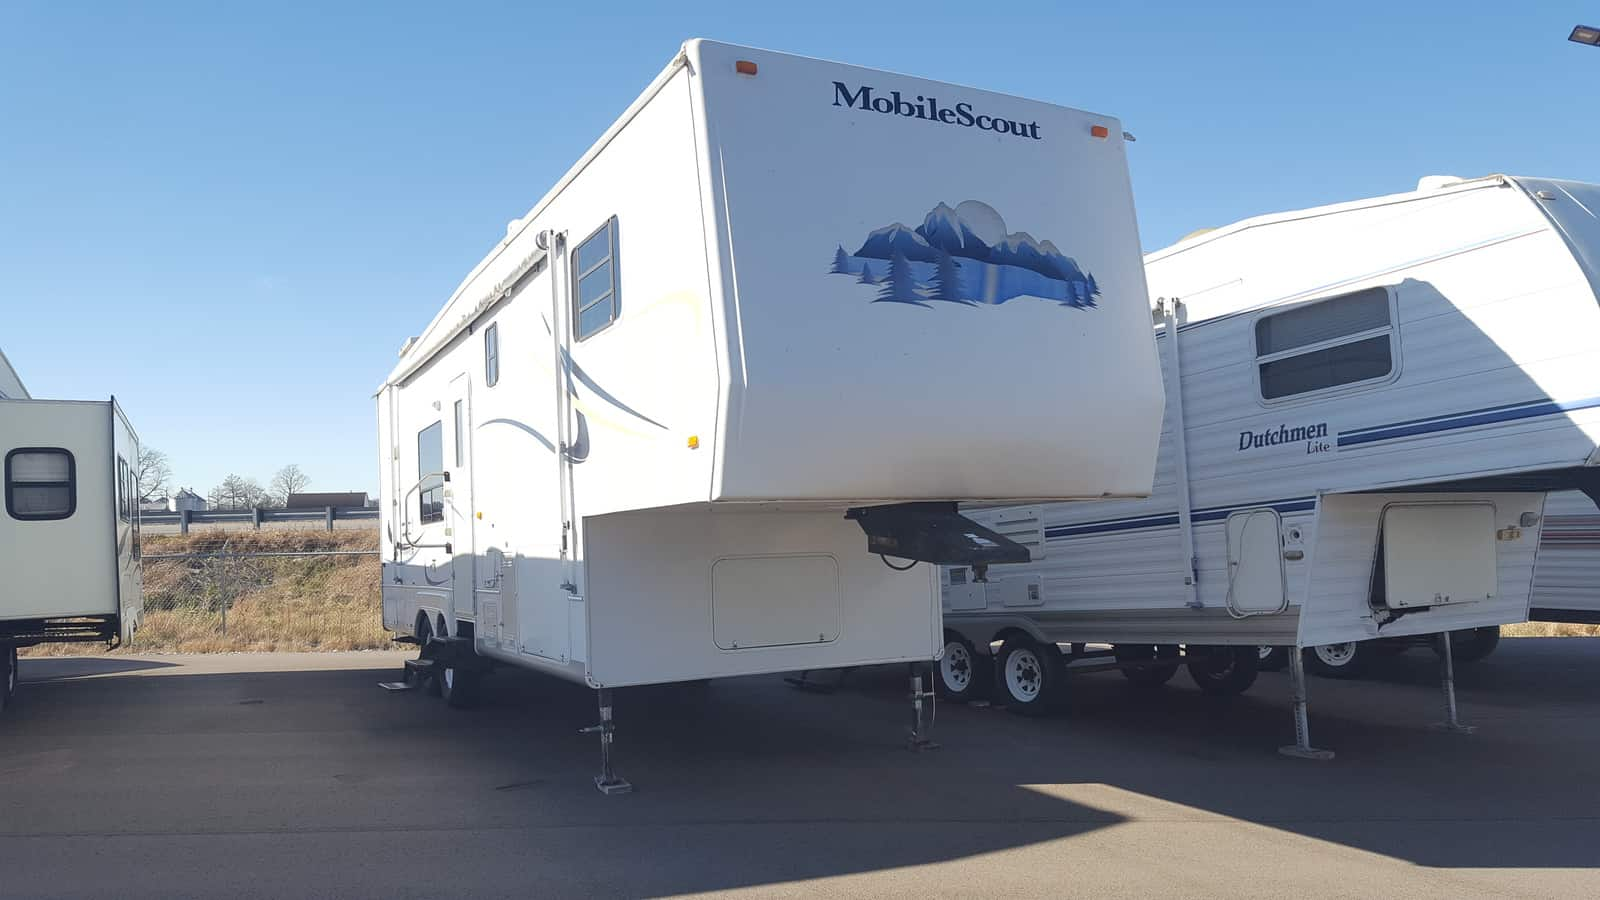 USED 2003 Sunnybrook MOBILE SCOUT 30RKFS - American RV